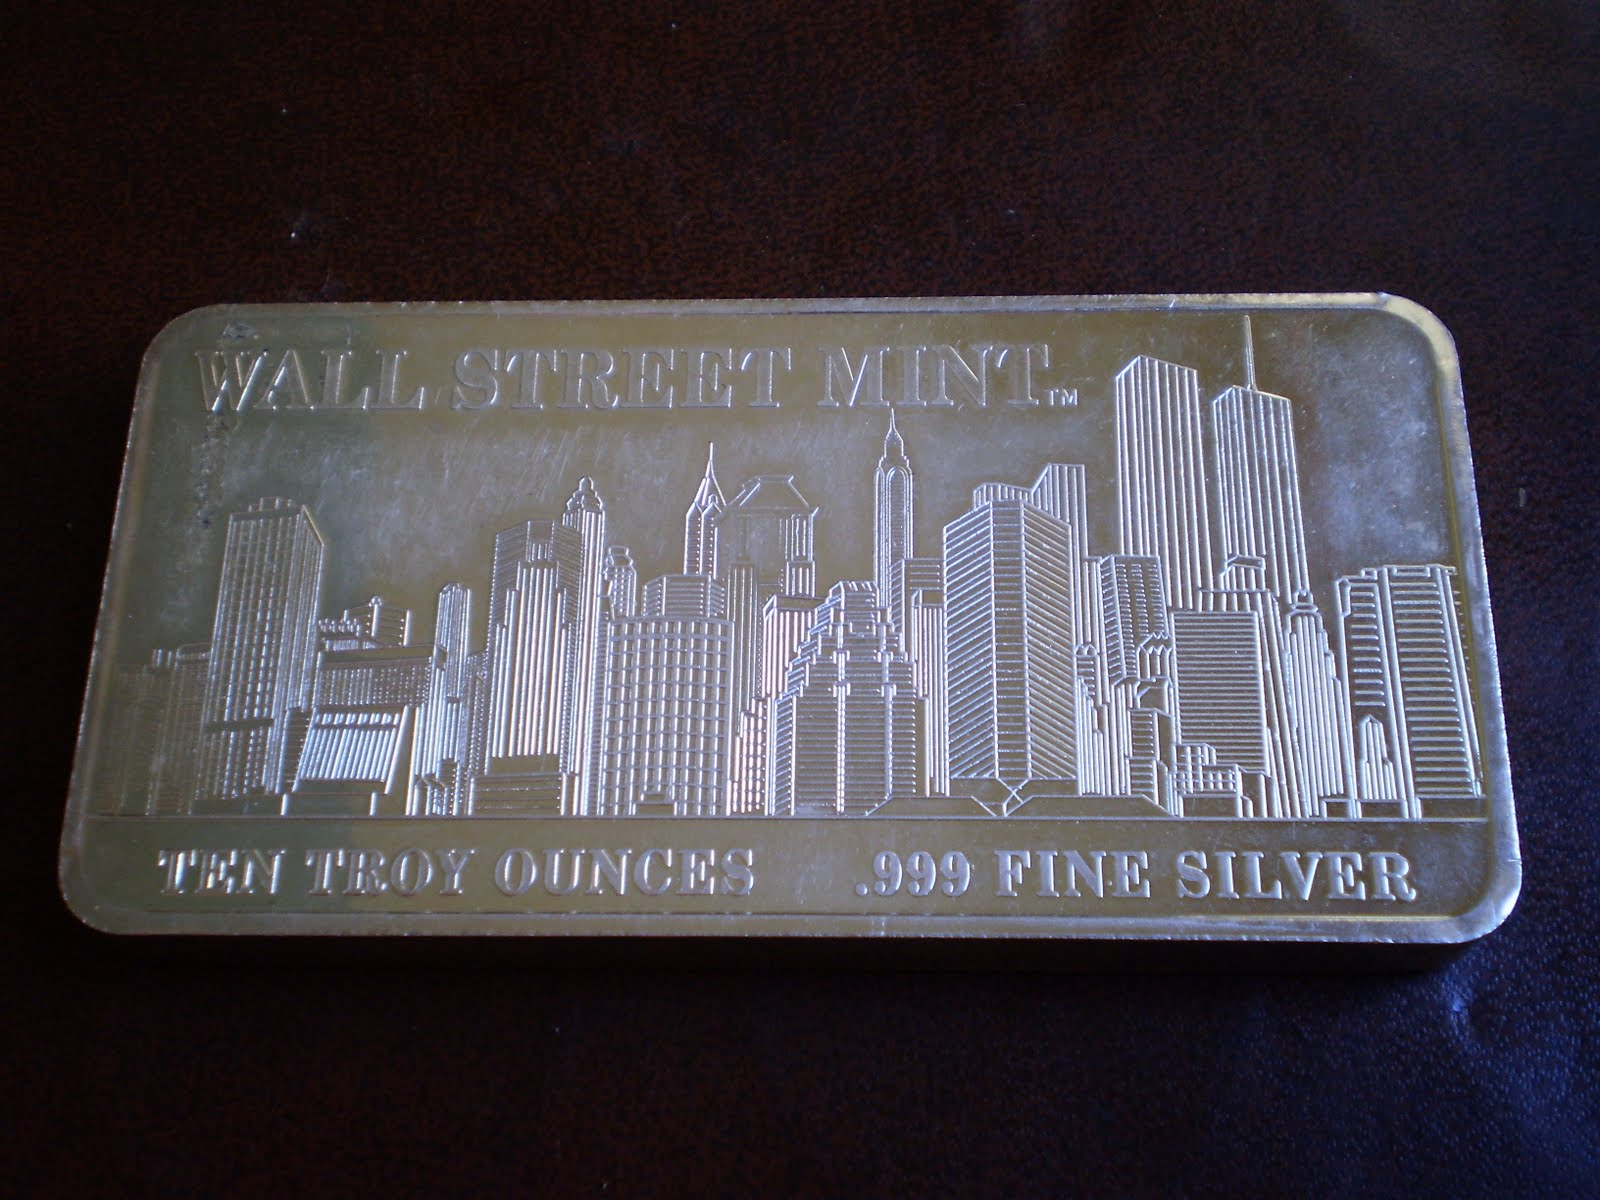 Silver Gold Bar Wall Street Mint Ten Troy Ounce Silver